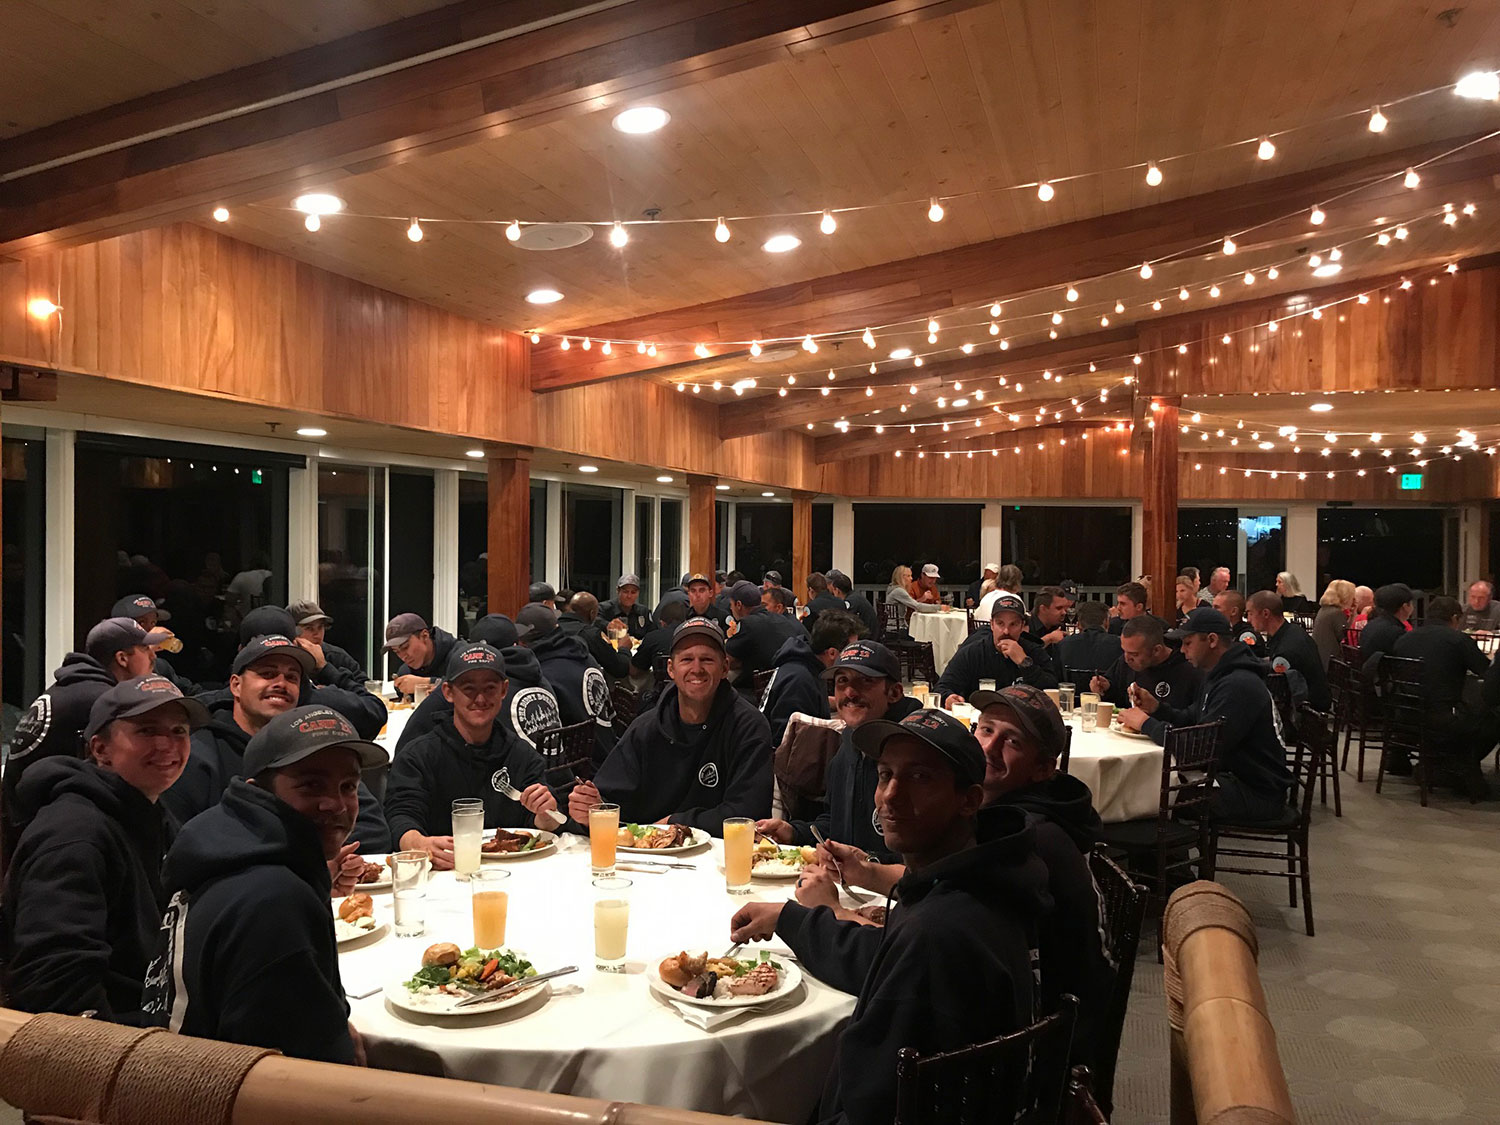 Group of firemen eating dinner in large open indoor room